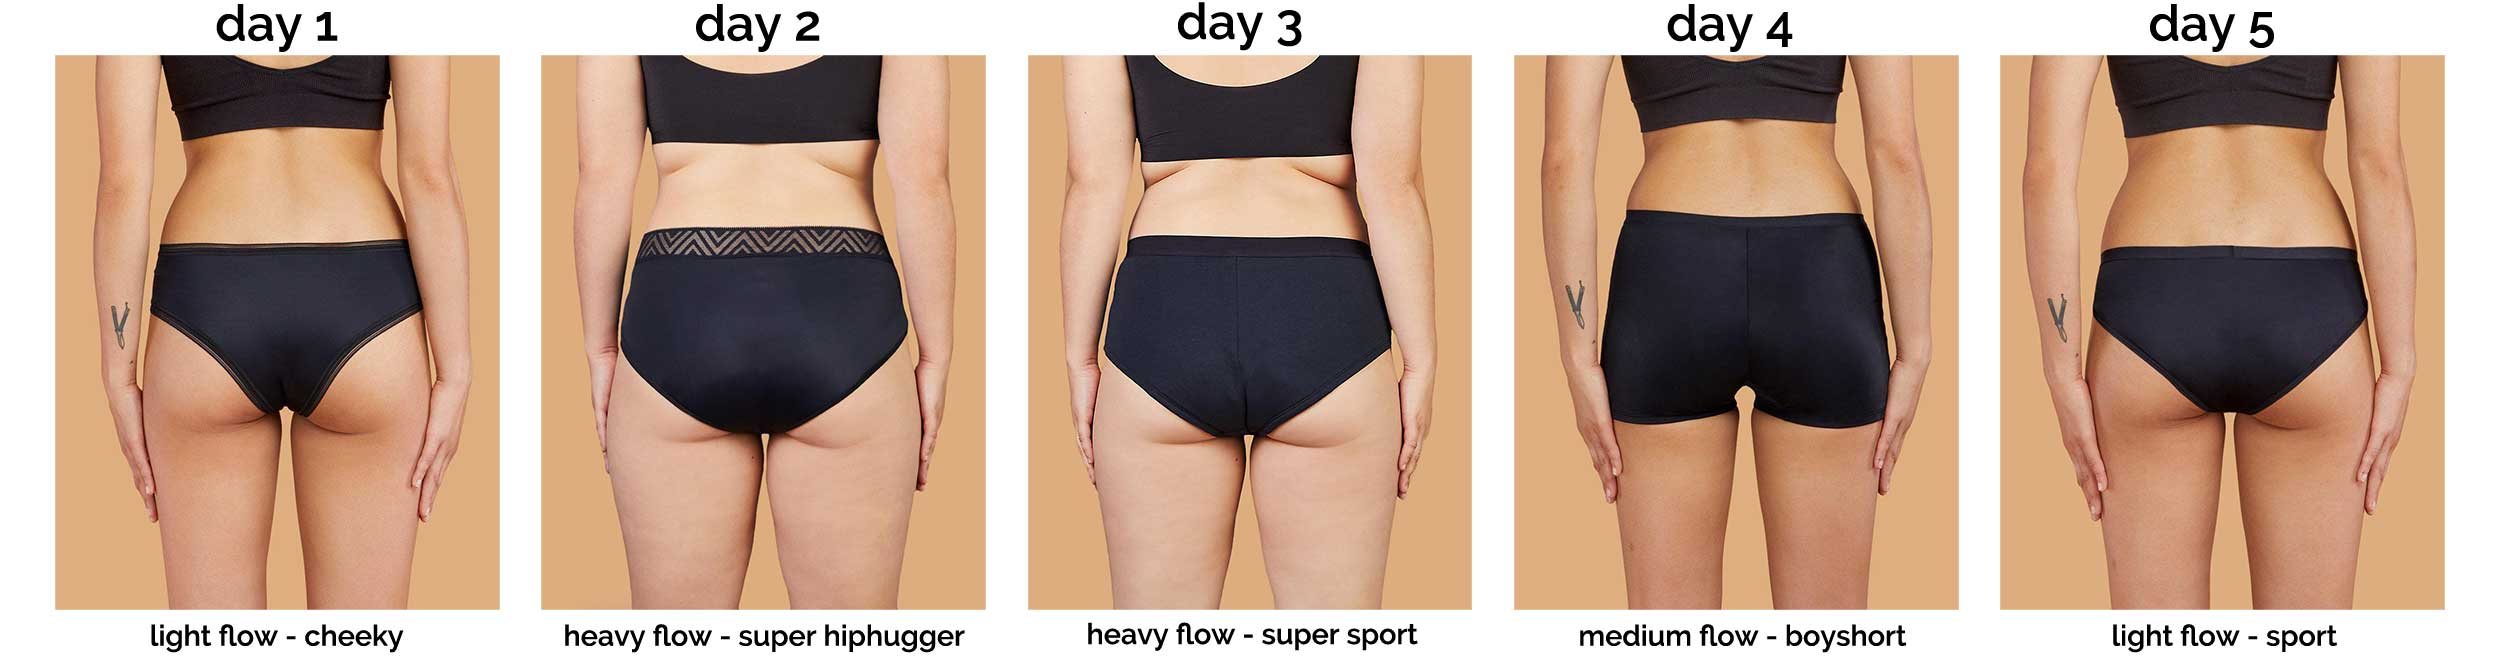 Image of 5 women wearing the different styles of Thinx period panties and their corresponding absorbencies